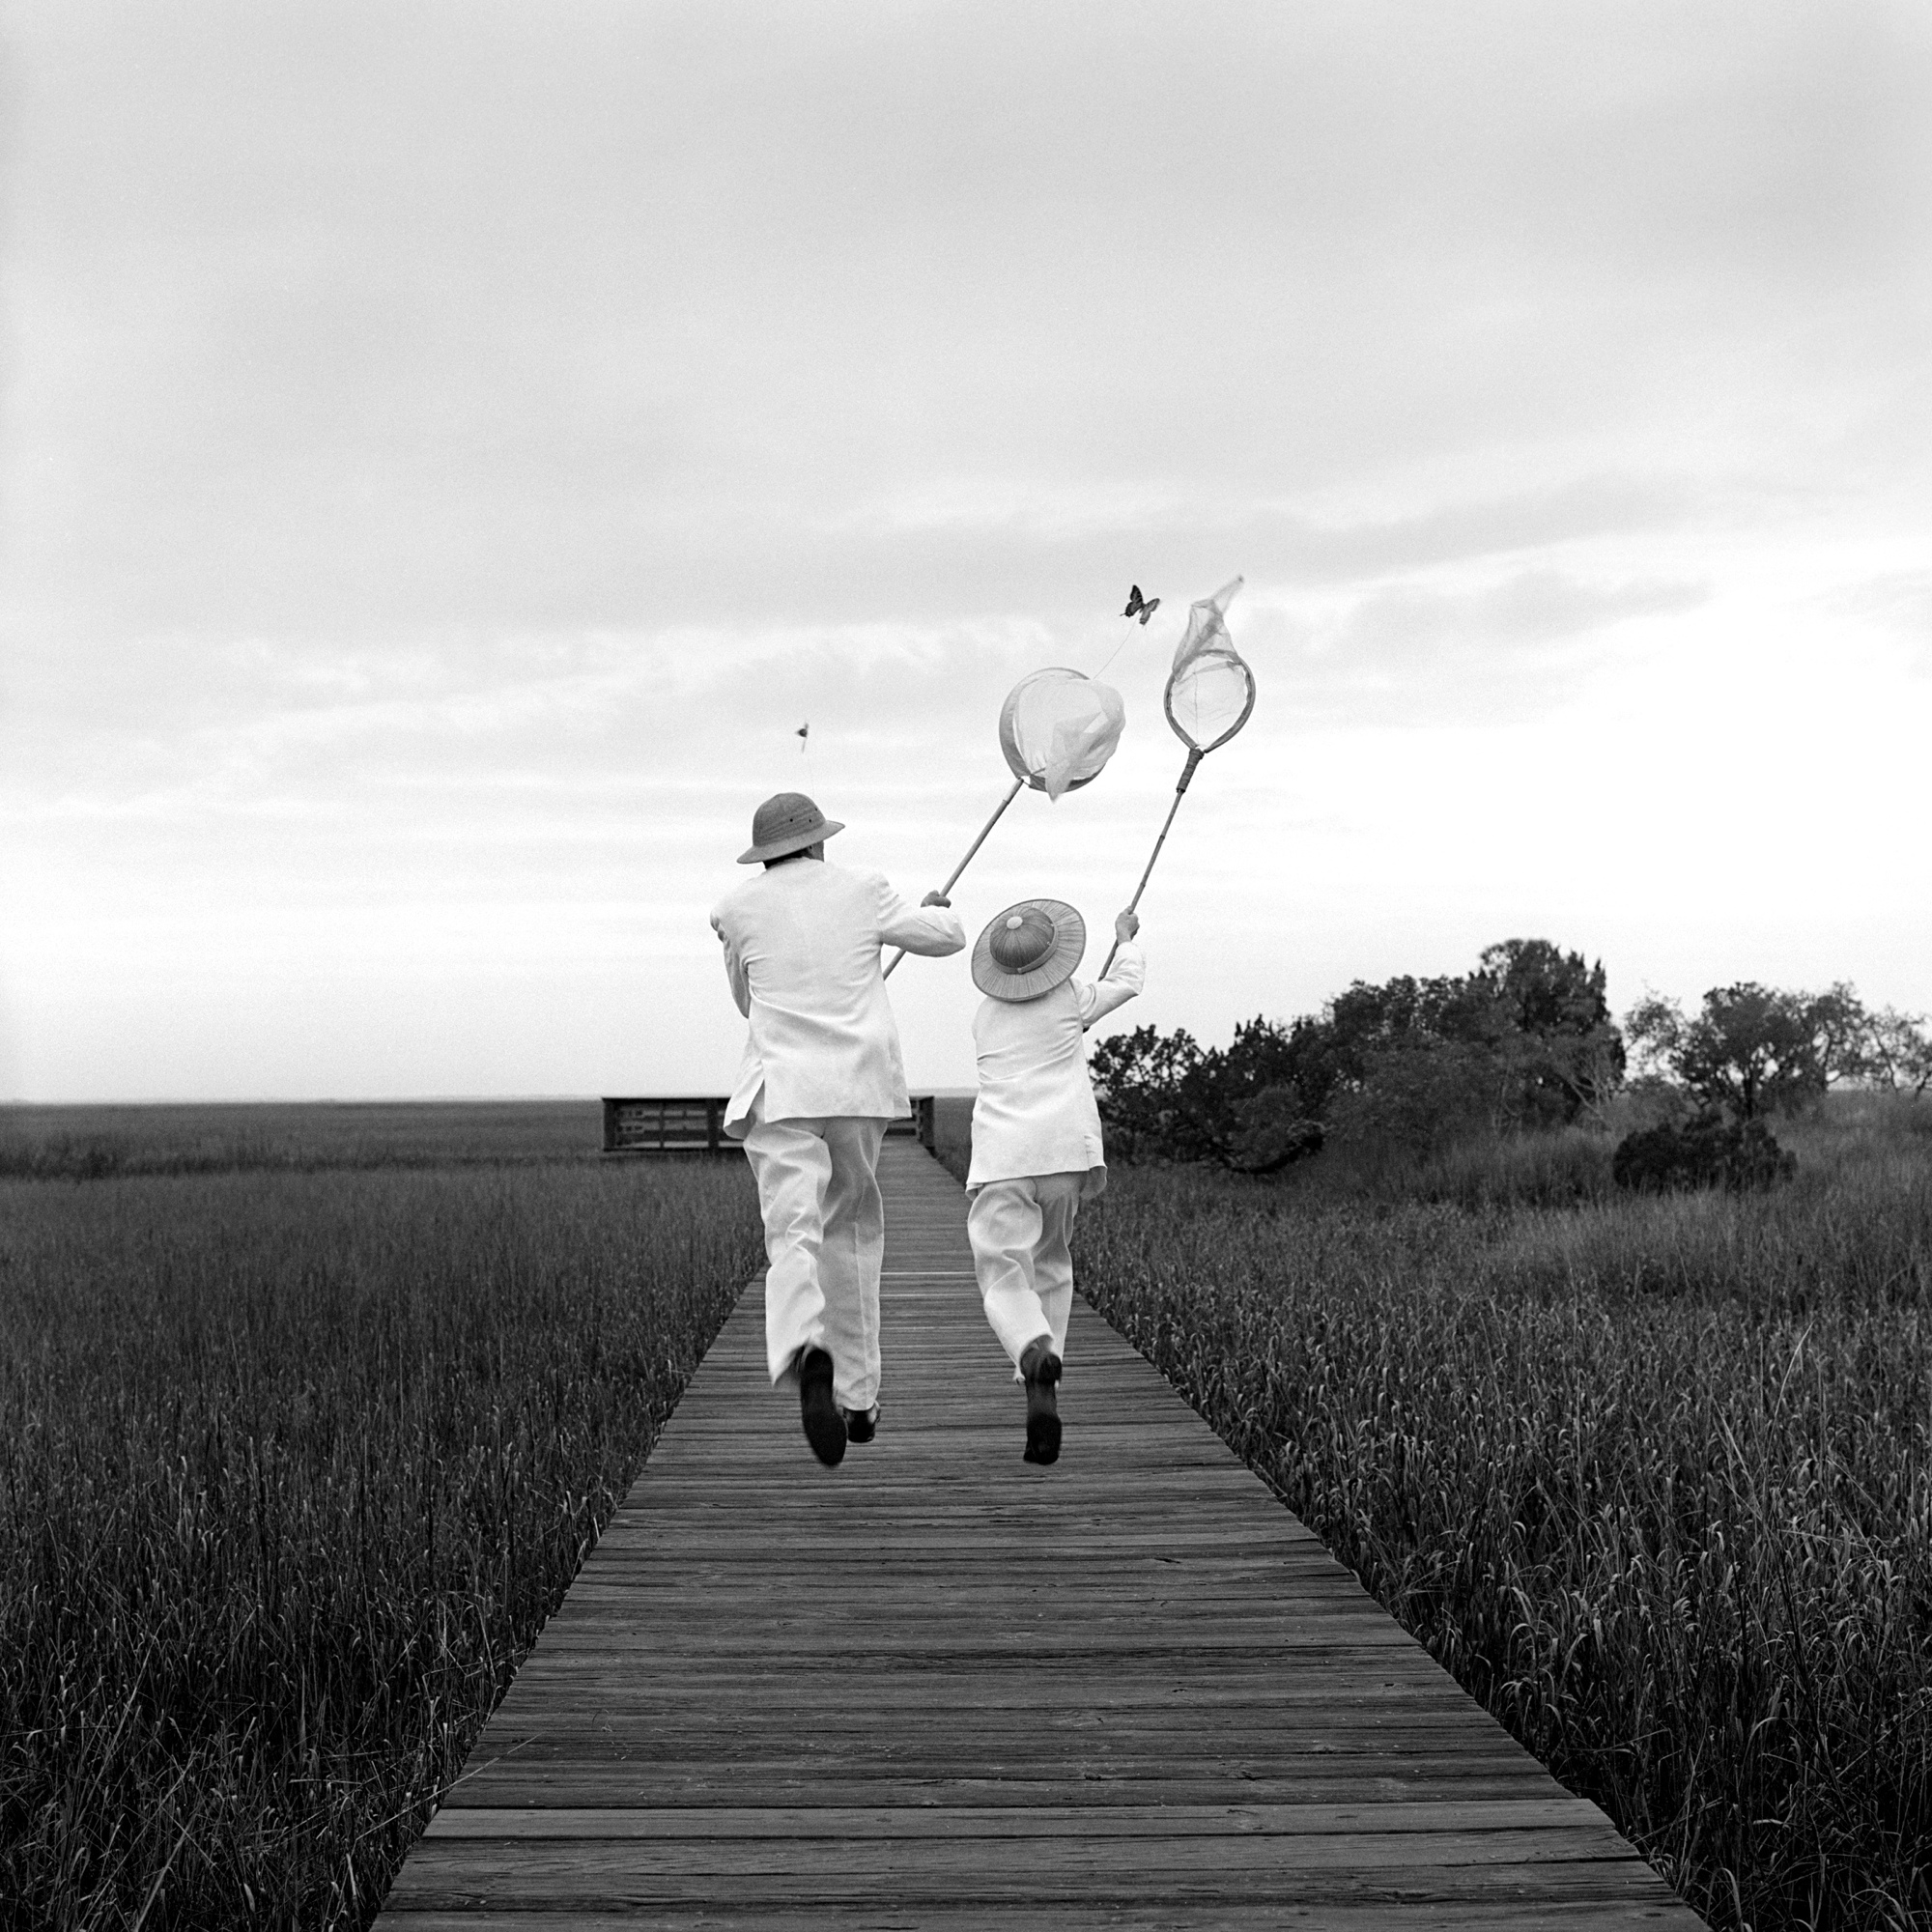 Gary and Henry Chasing Butterfly,Beaufort, SC  1996 Silver gelatin print 27 x 27 cm (image) 56 x 66 cm (mount)